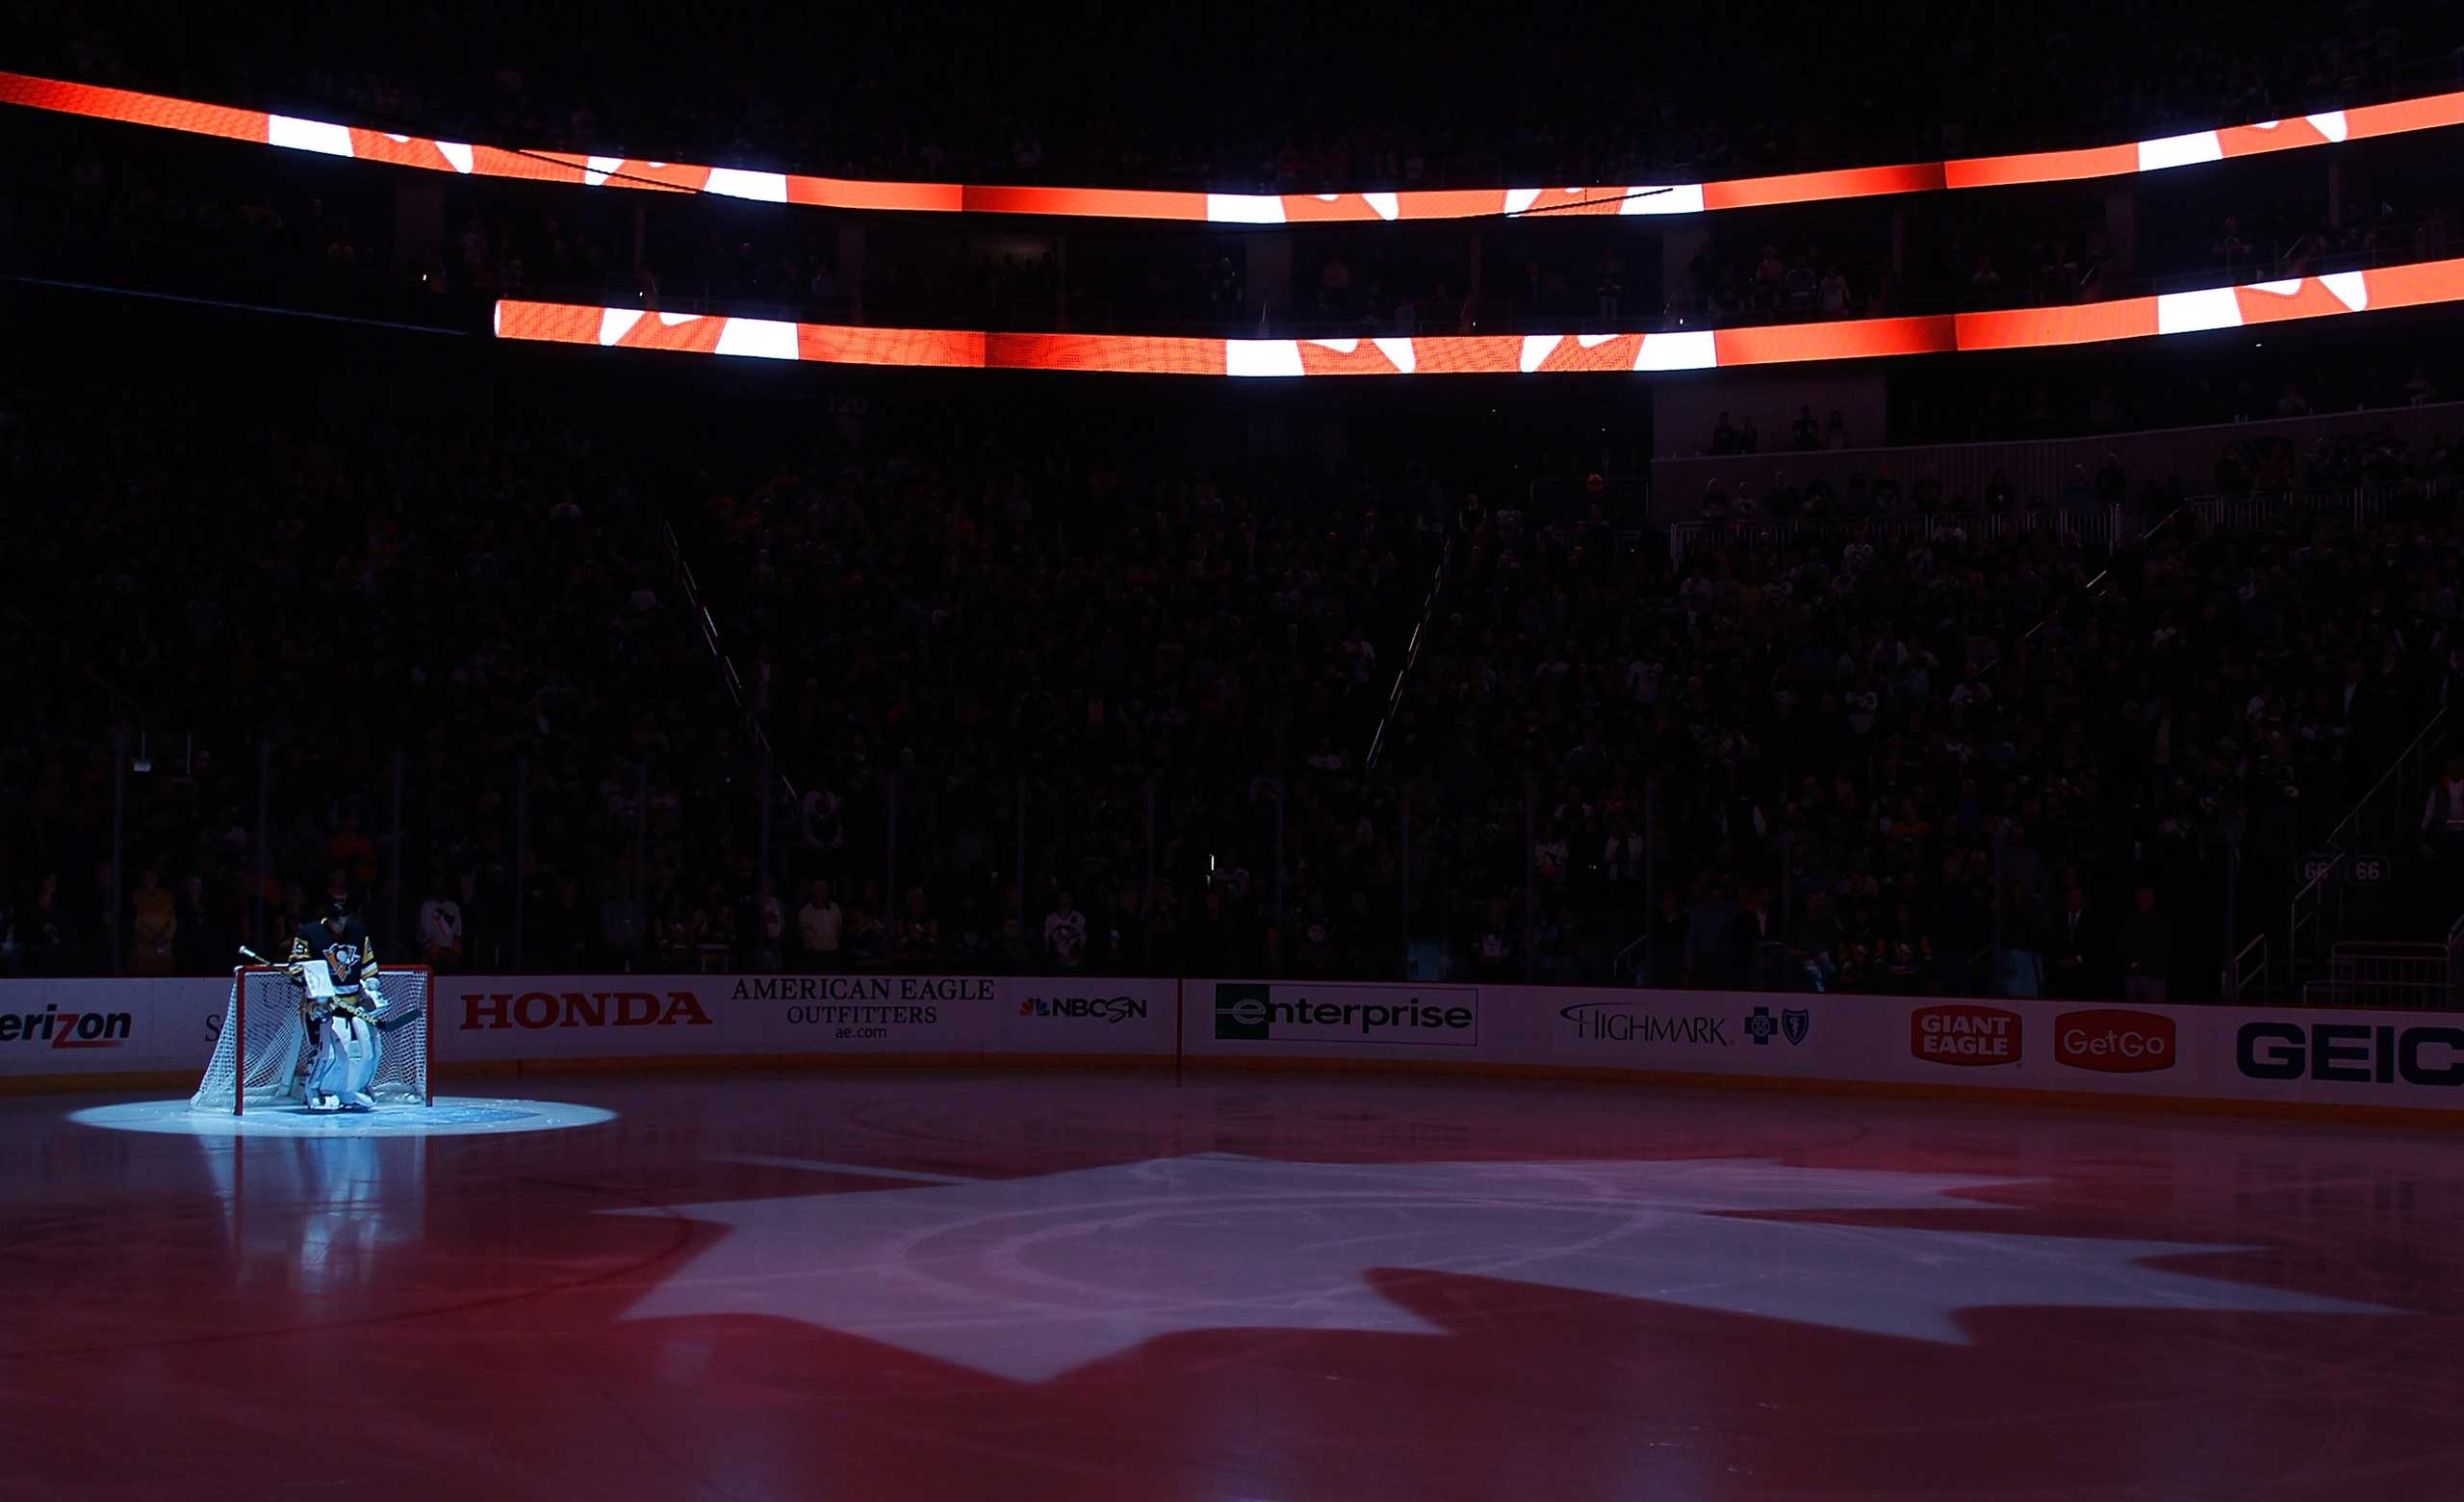 The Canadian National Anthem is performed in honor of the shooting victims in Ottawa during the game between the Philadelphia Flyers and Pittsburgh Penguins at Consol Energy Center on Oct. 22, 2014 in Pittsburgh, Pa.